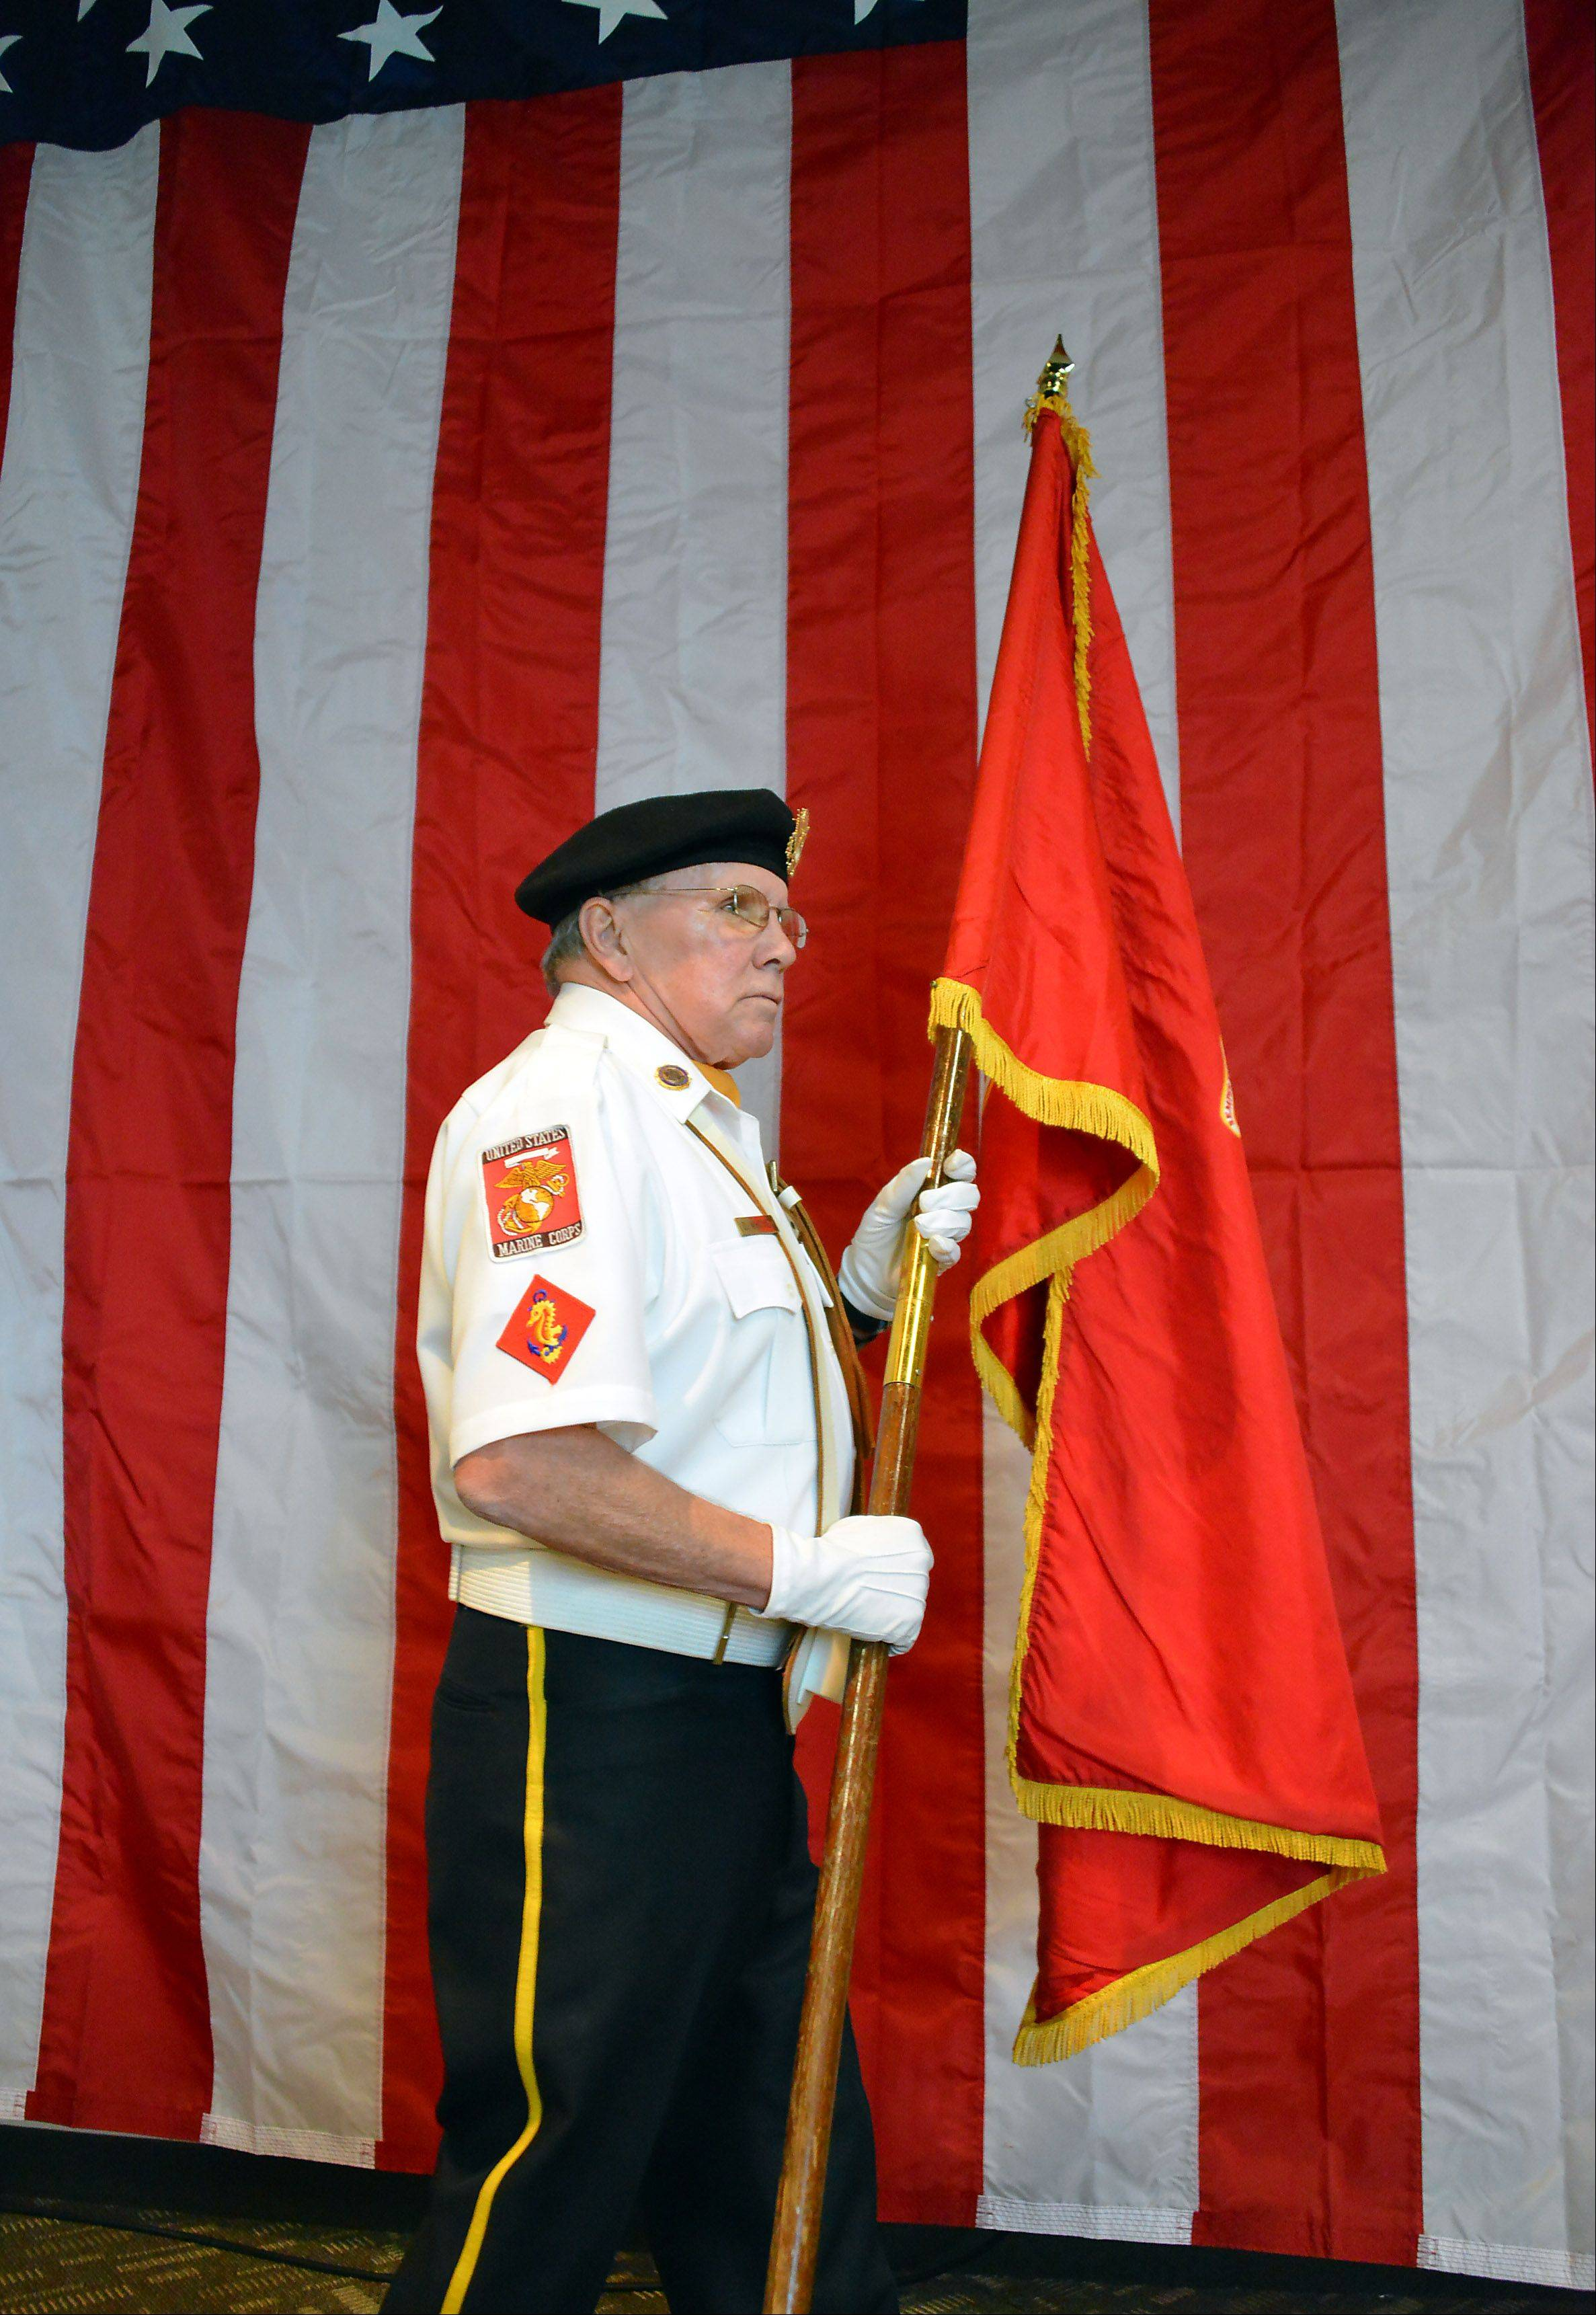 Dick Whitney of Arlington Heights delivers the Marine Corps flag at the Veterans Day celebration held Saturday at St. Peter Lutheran Church in Arlington Heights. The Northwest Suburban Marine Corps League was celebrating the 237th birthday of the U.S. Marine Corps.